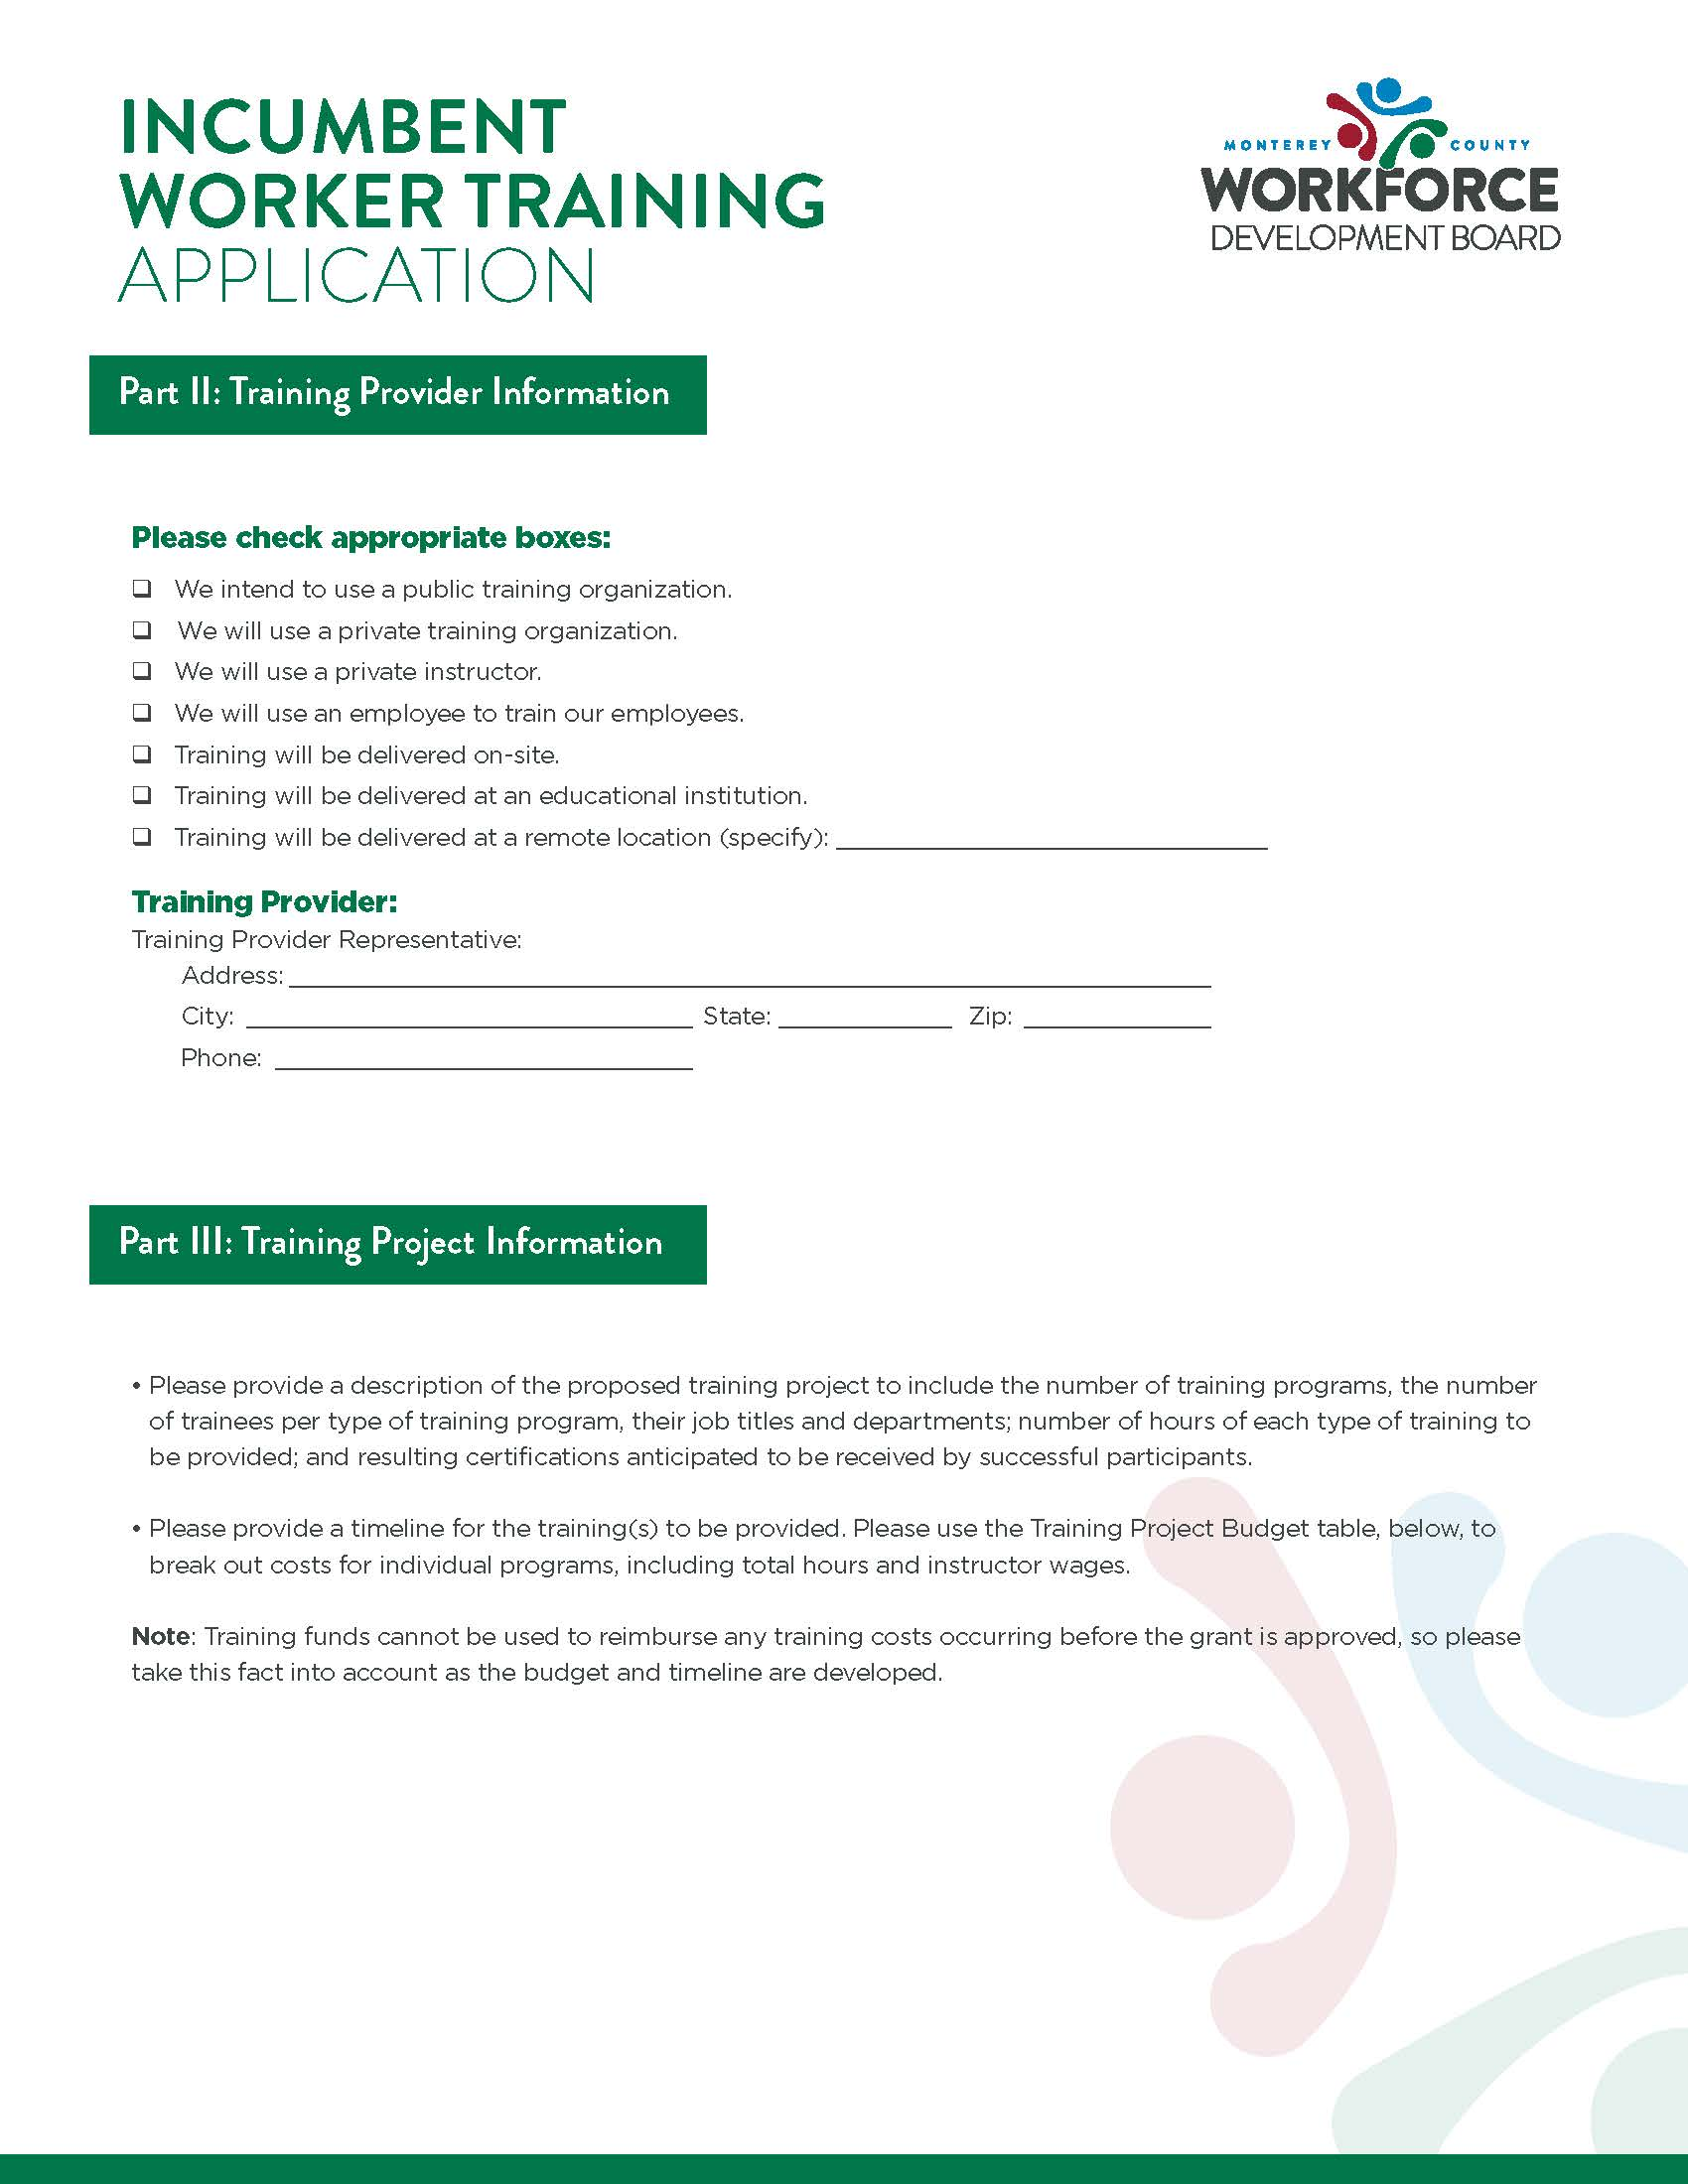 application page 2